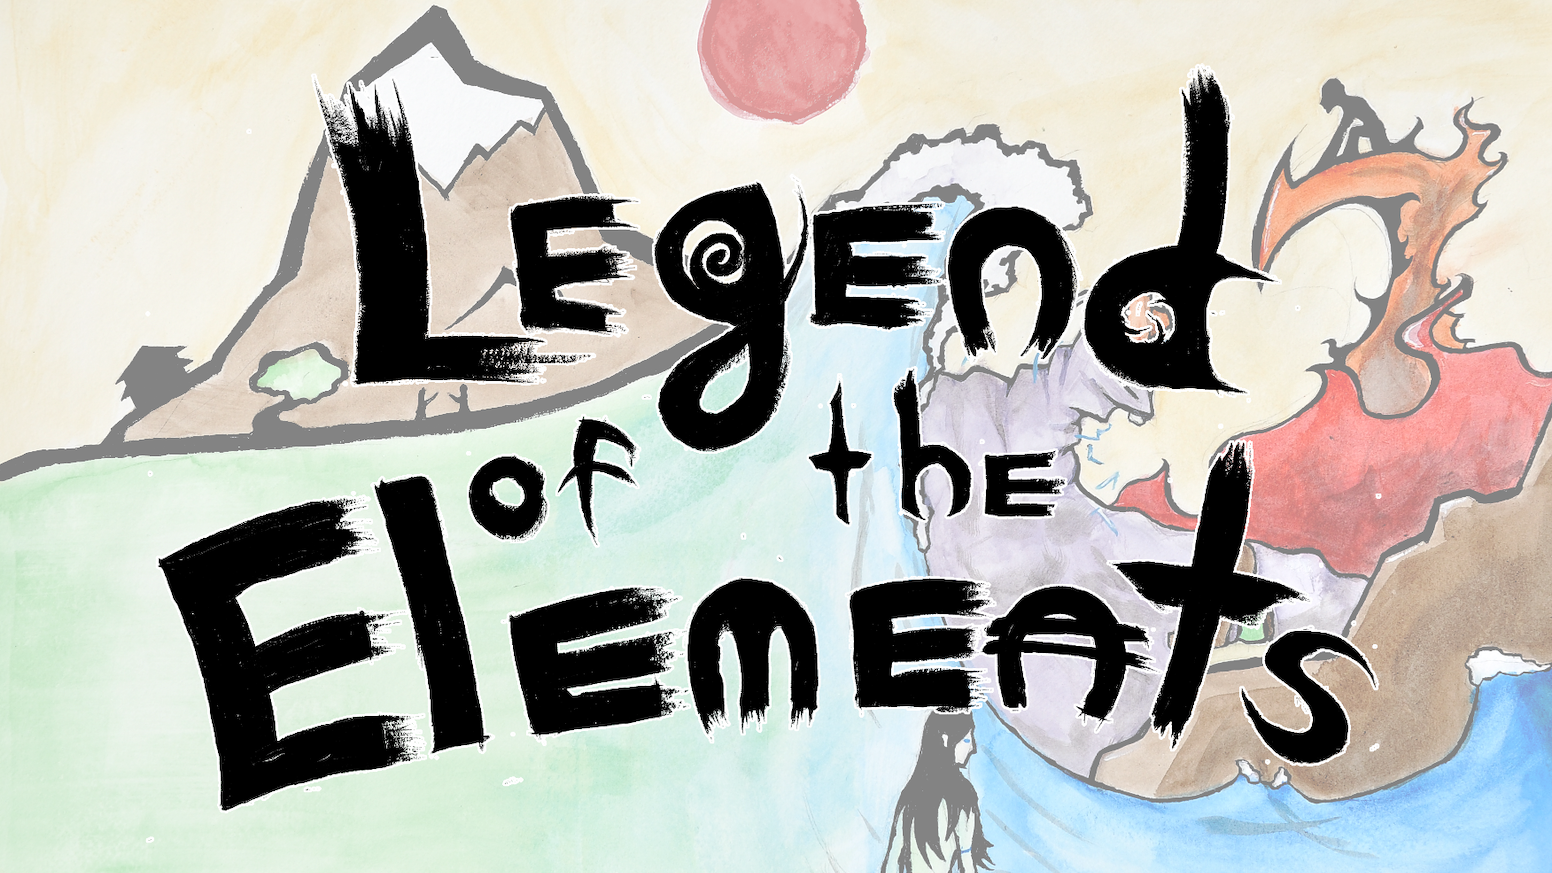 Elemental magic, martial arts and wuxia action meet in this tabletop roleplaying game inspired by Avatar: The Last Airbender!